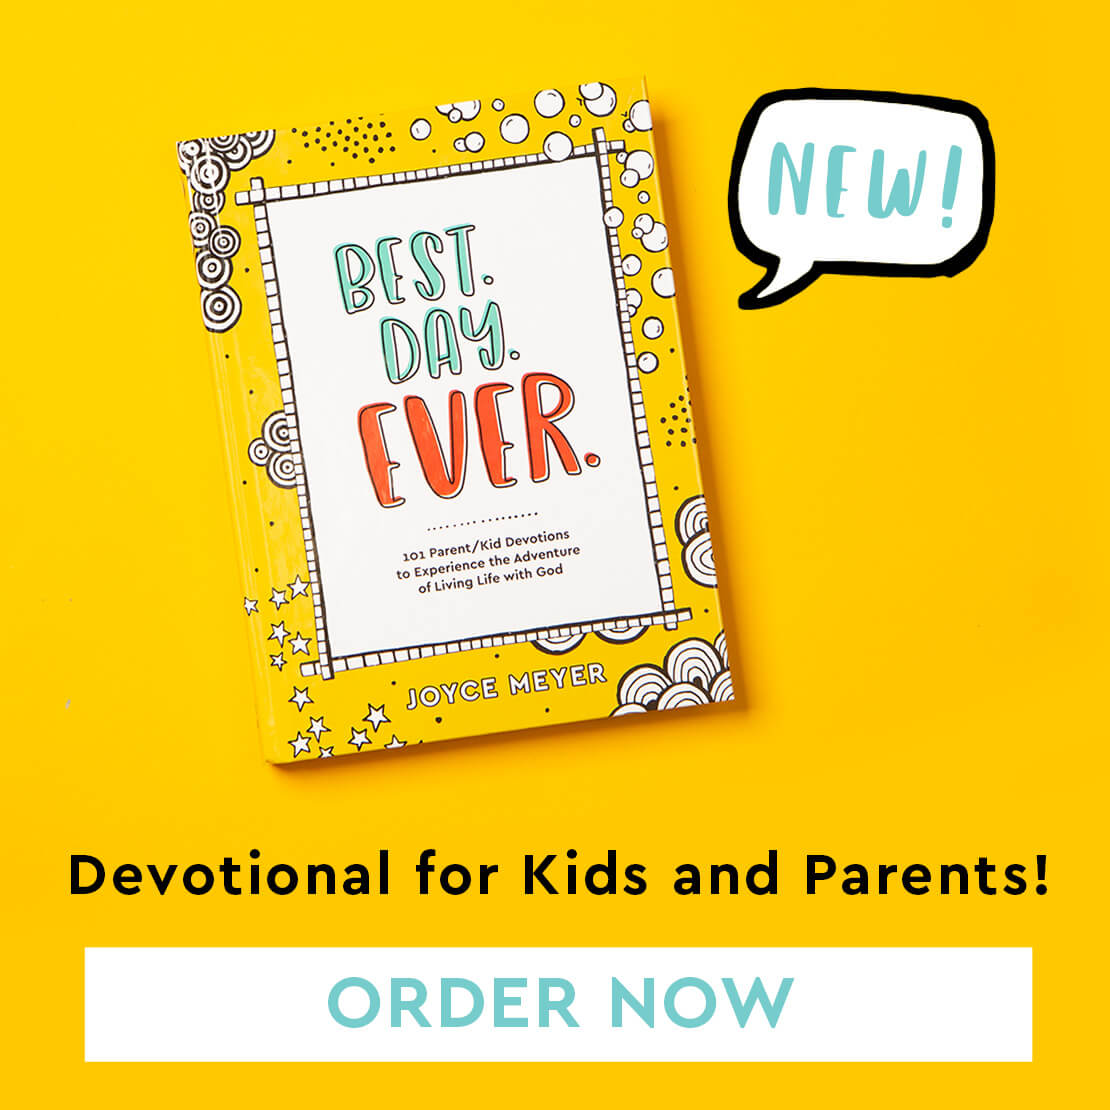 Best. Day. Ever. Devotional